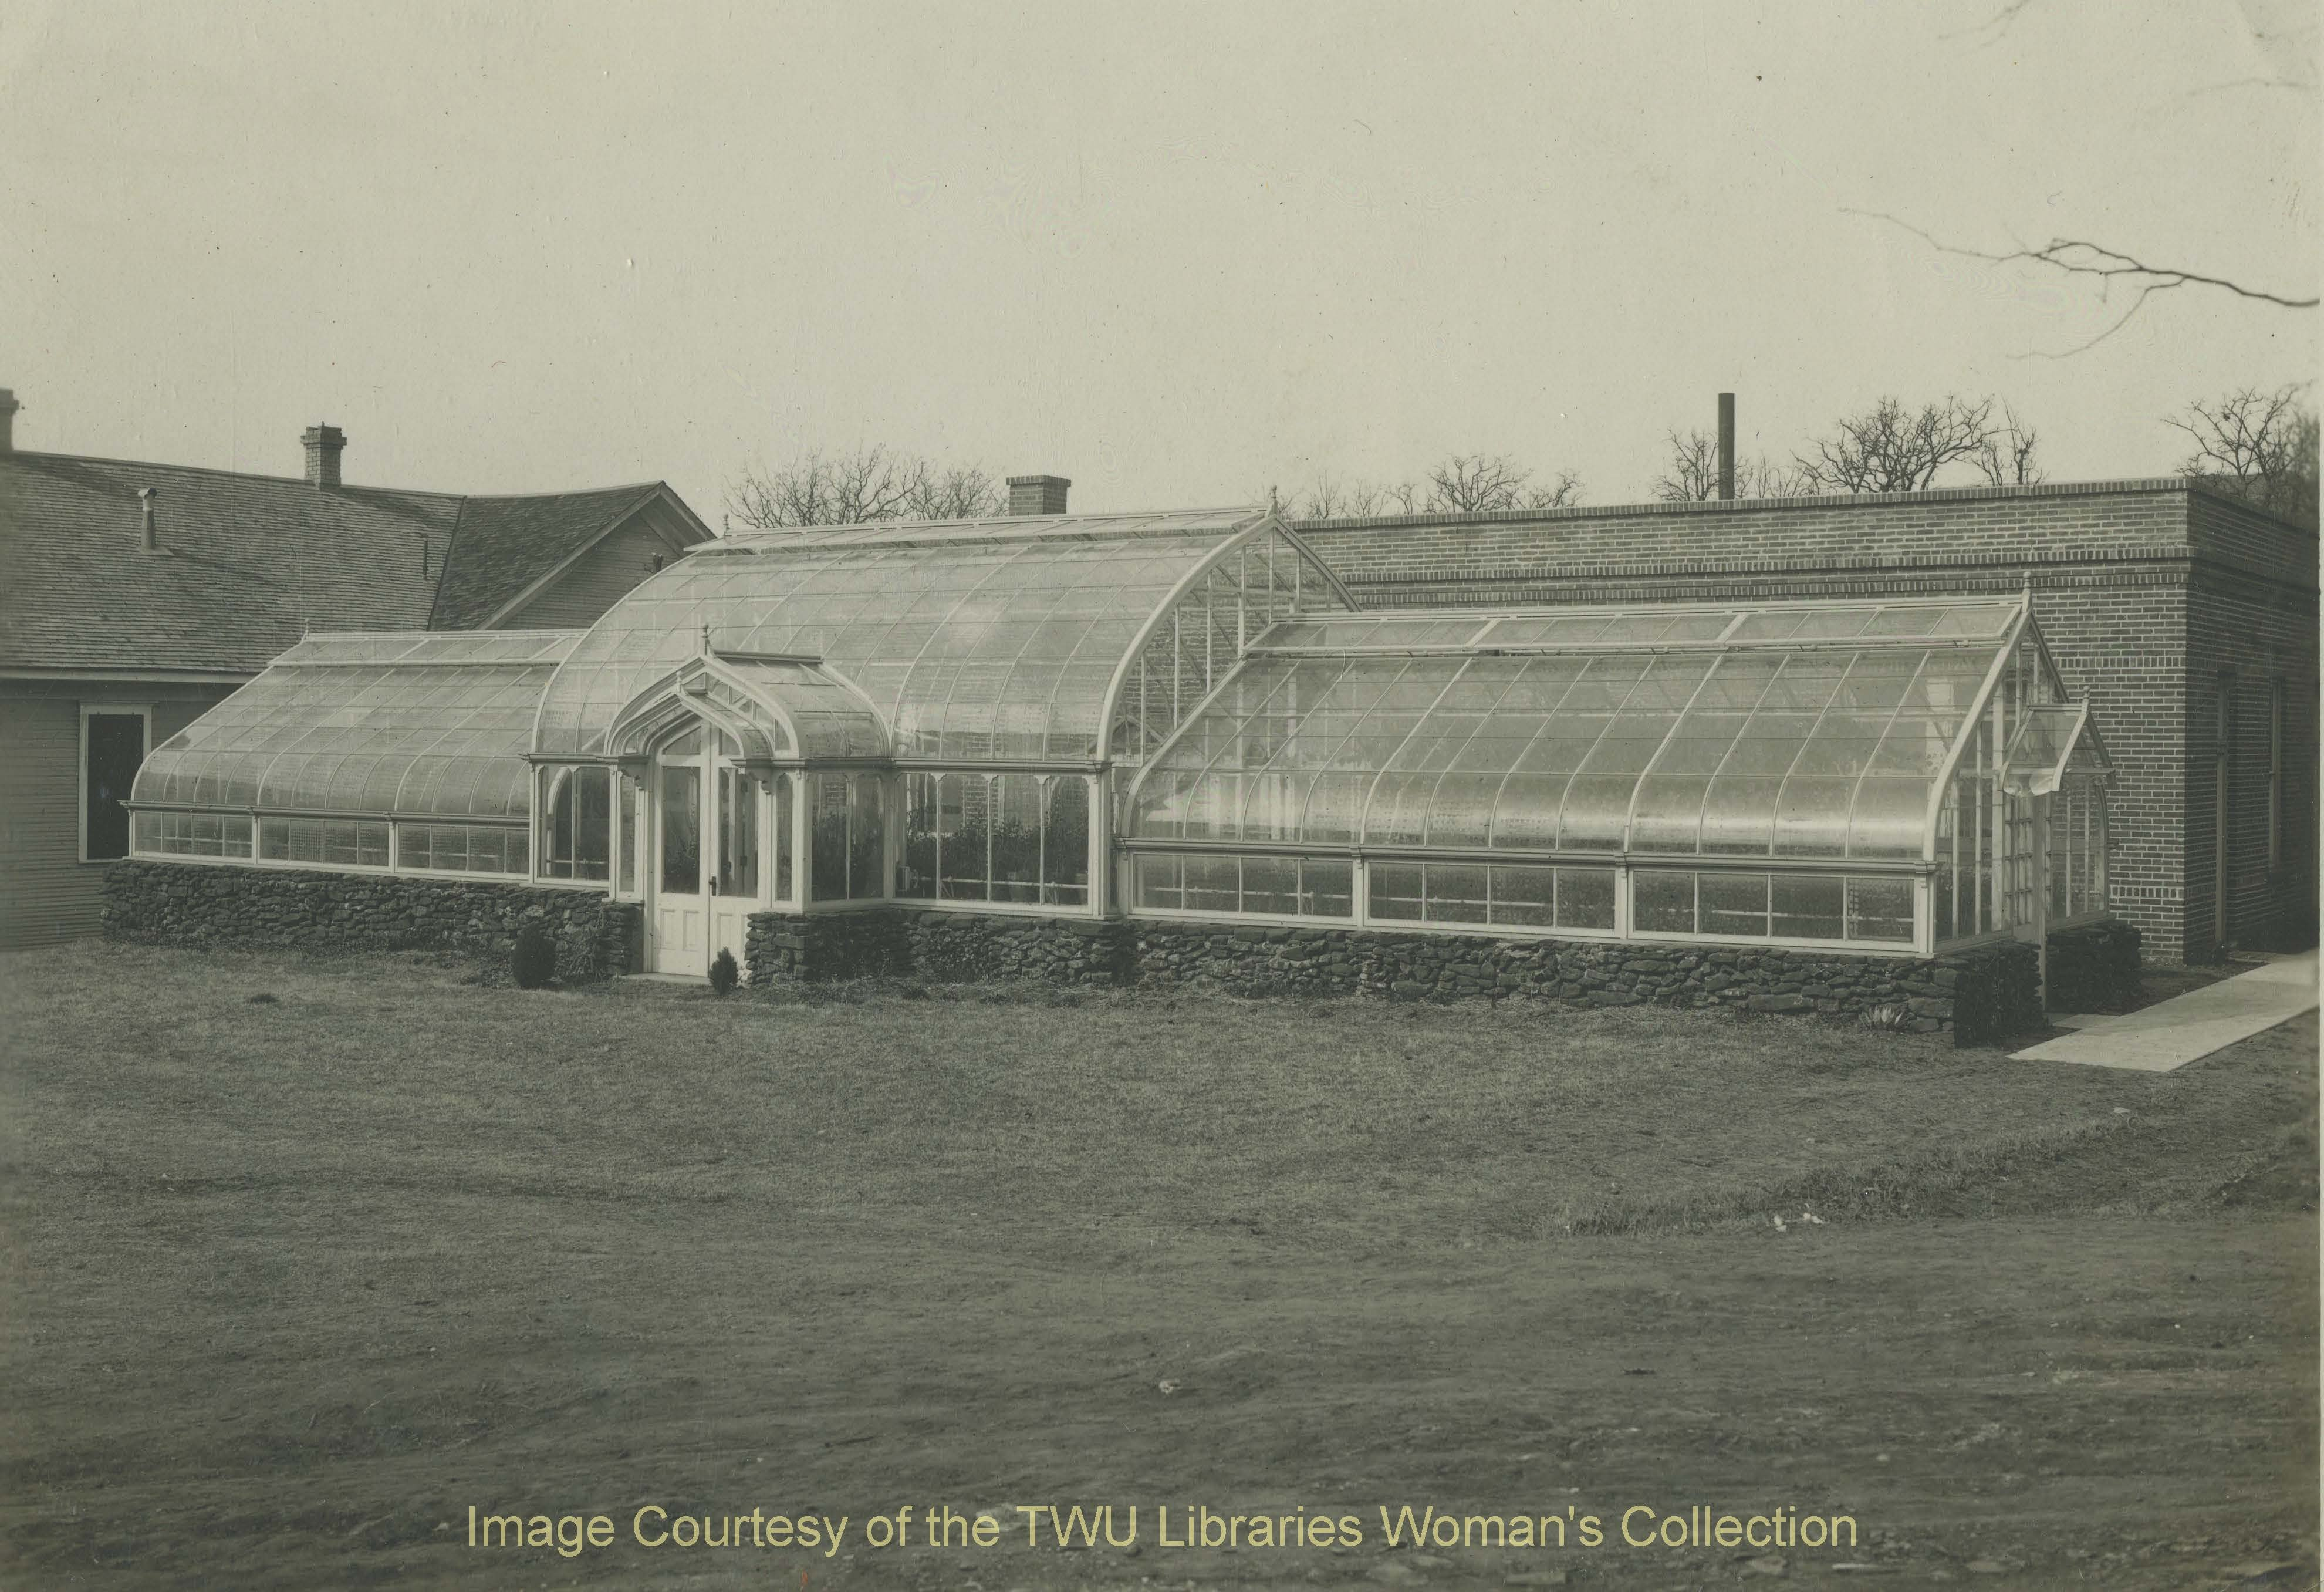 View of the Greenhouse with the Rural Arts Building behind it. (Photo: 1930s, Courtesy of the TWU Woman's Collection)